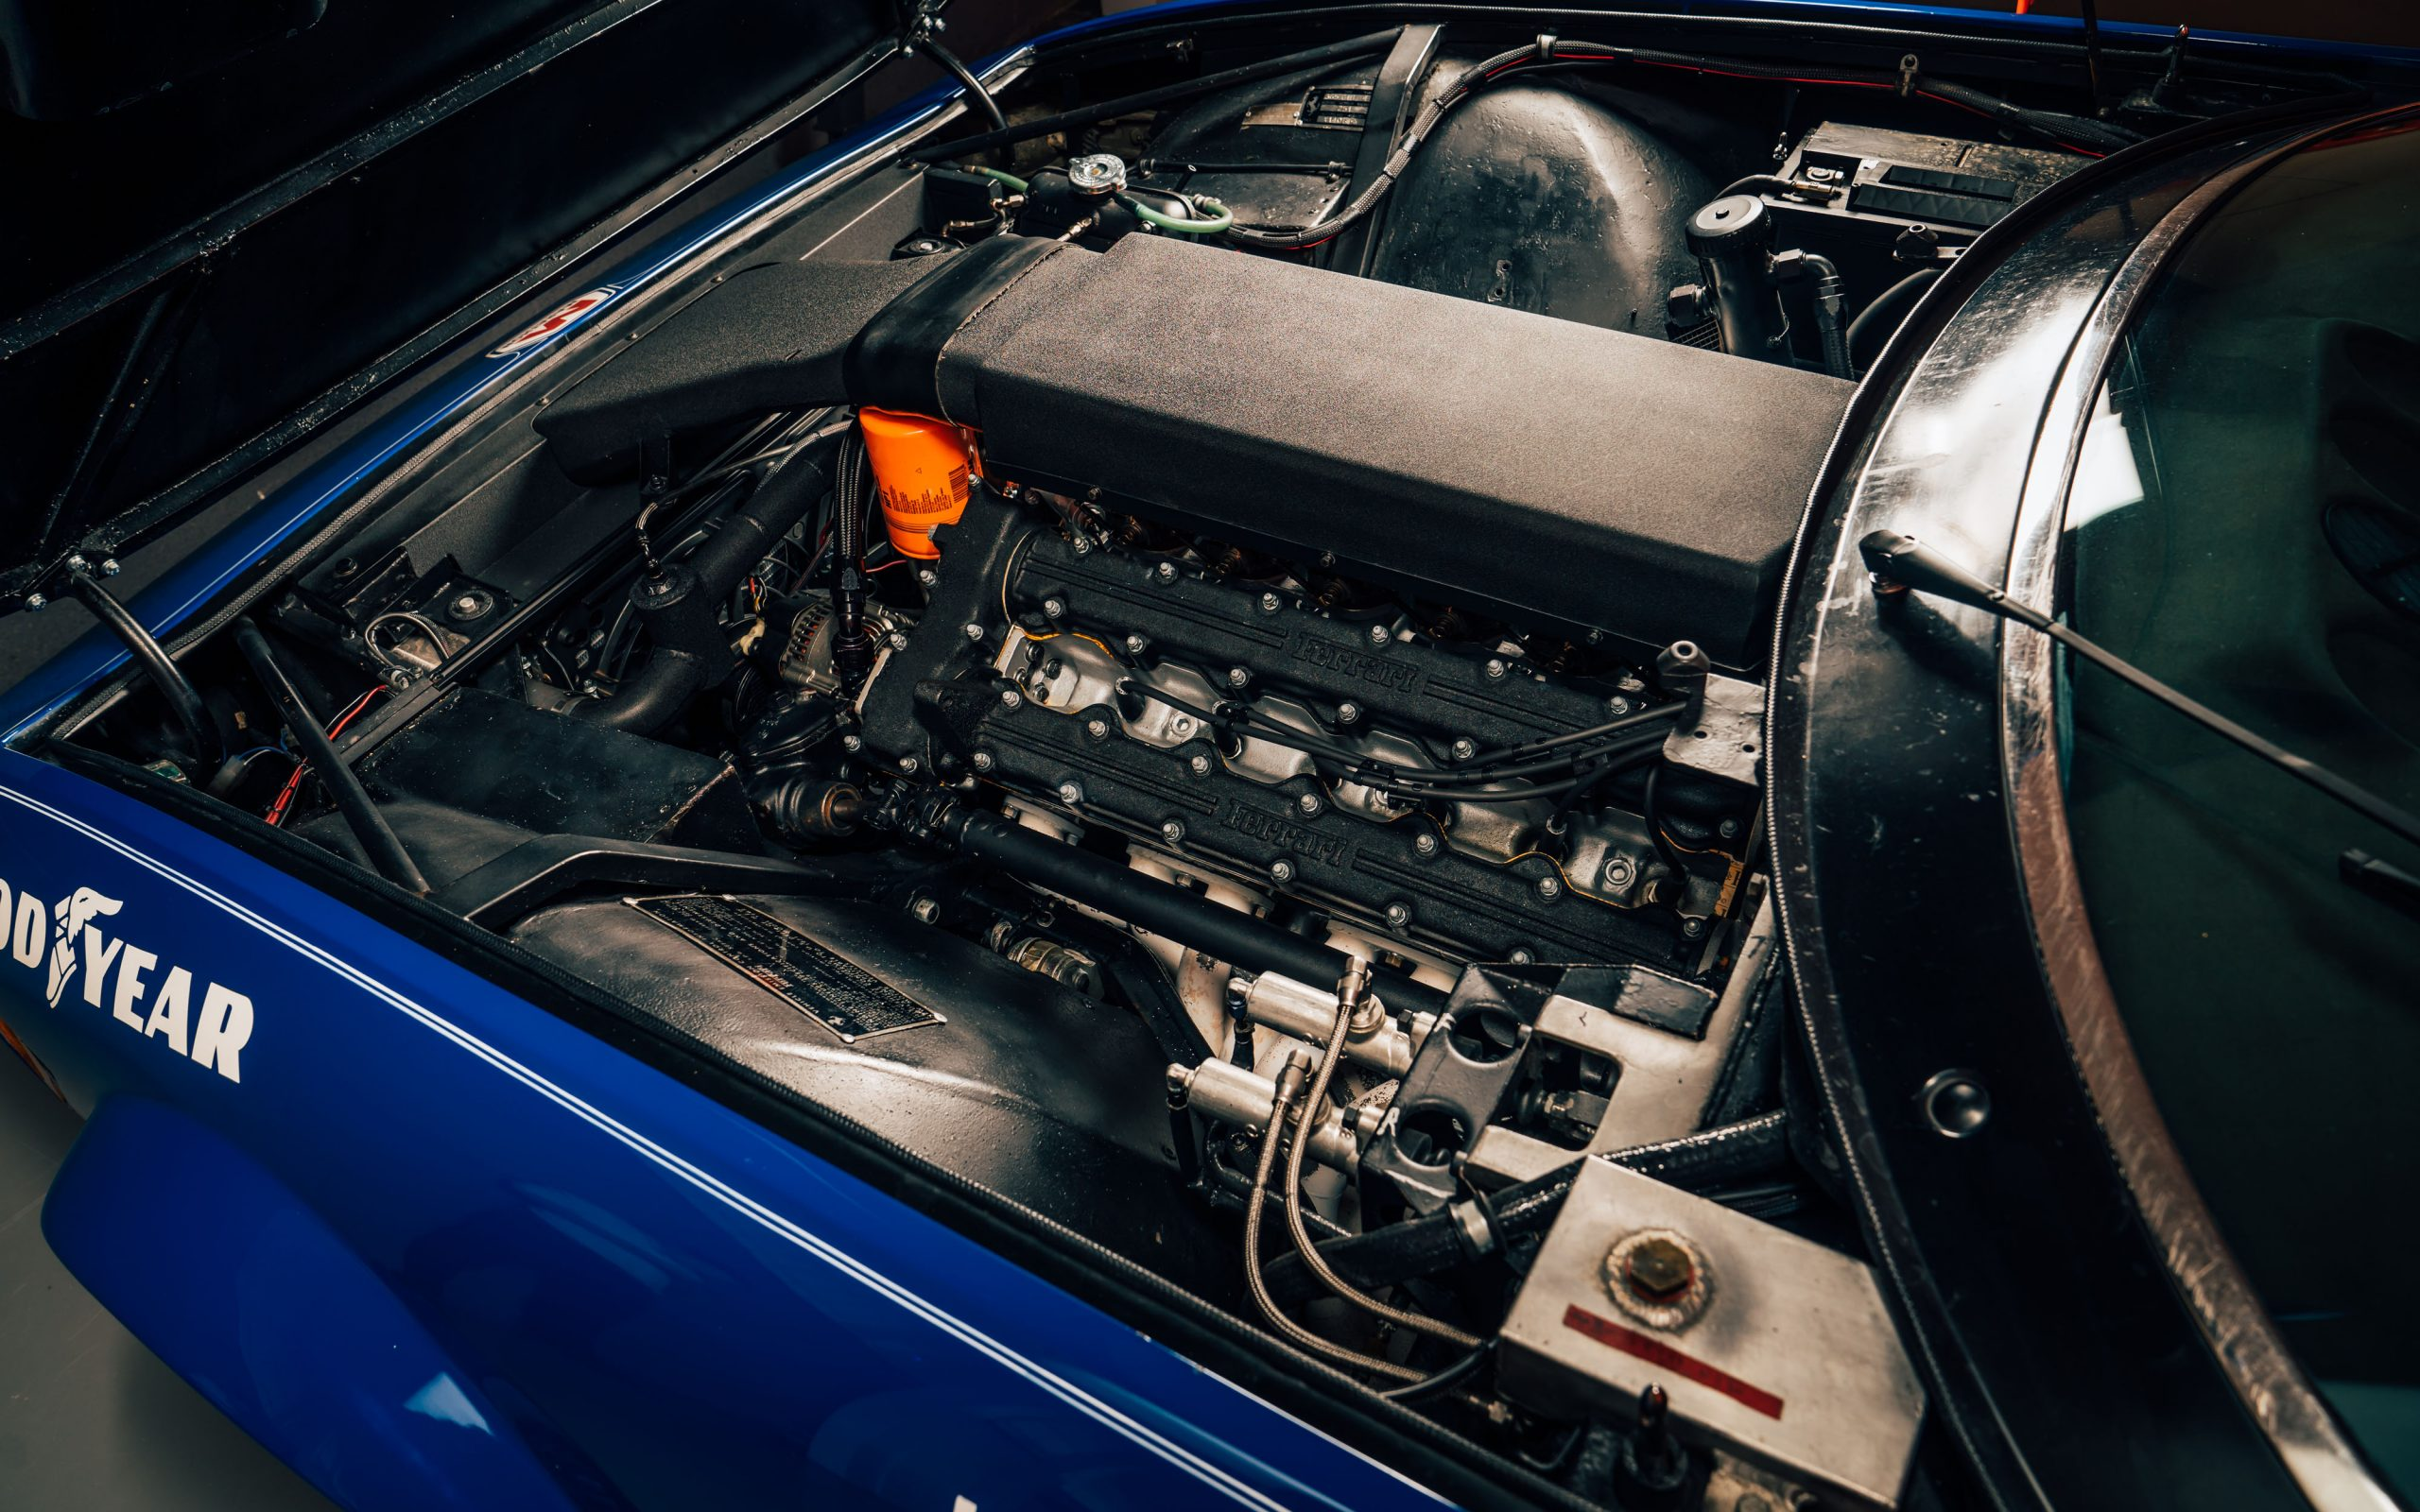 Ferrari 365 GTB:4 Daytona engine